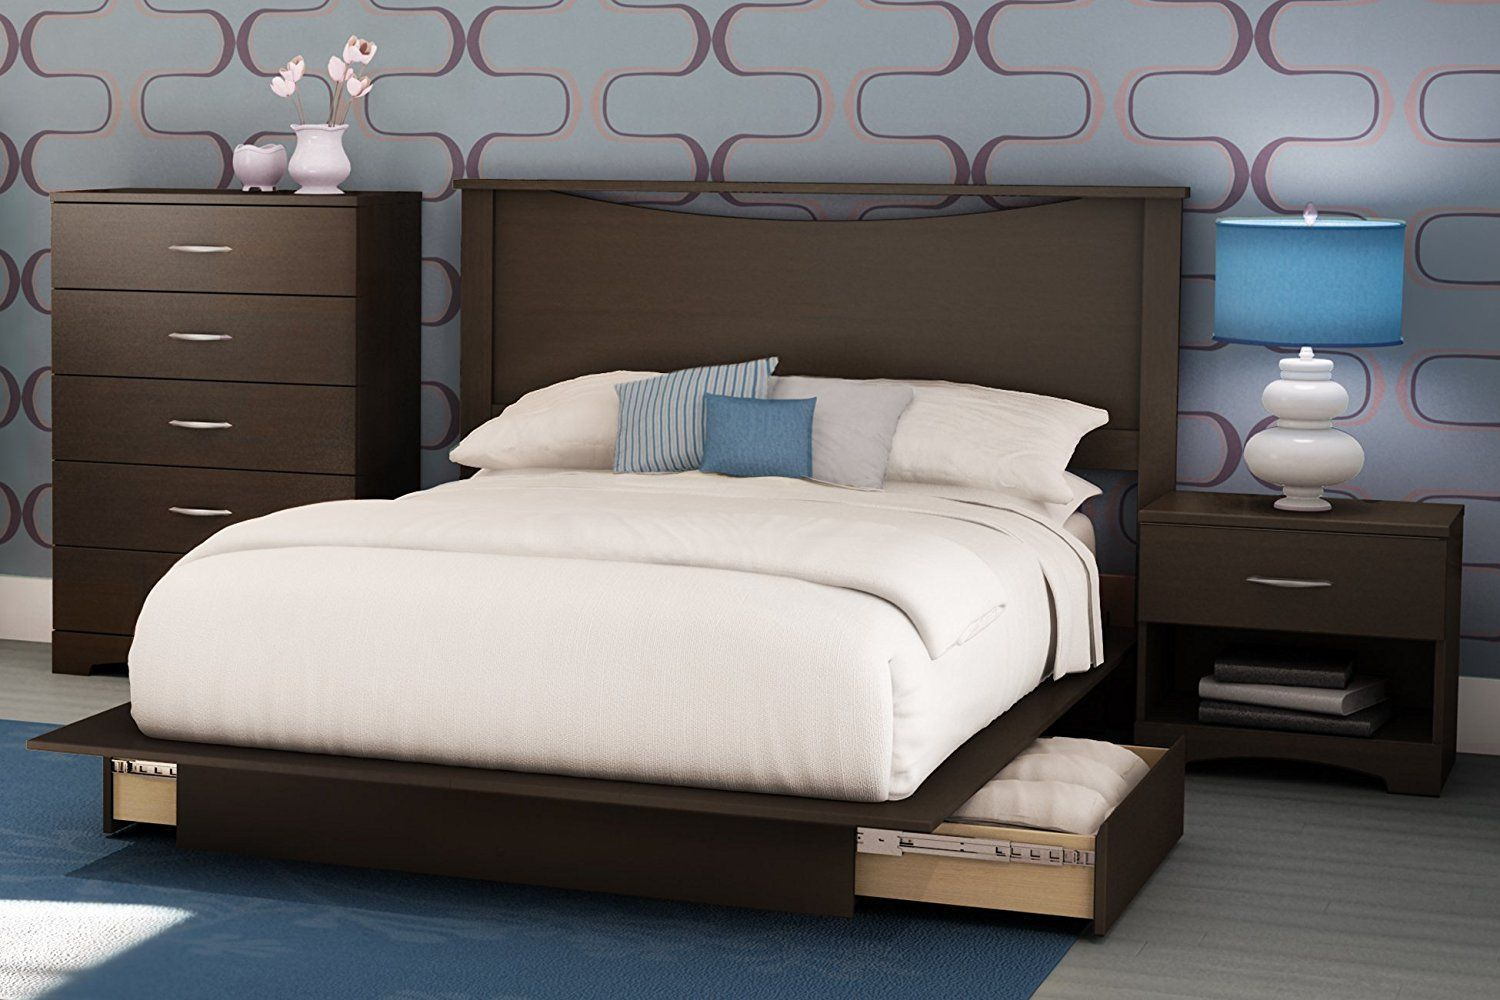 Superieur Cool Cheap Bedroom Sets For Sale   Top Bedroom Sets Review #CheapBedroomSets